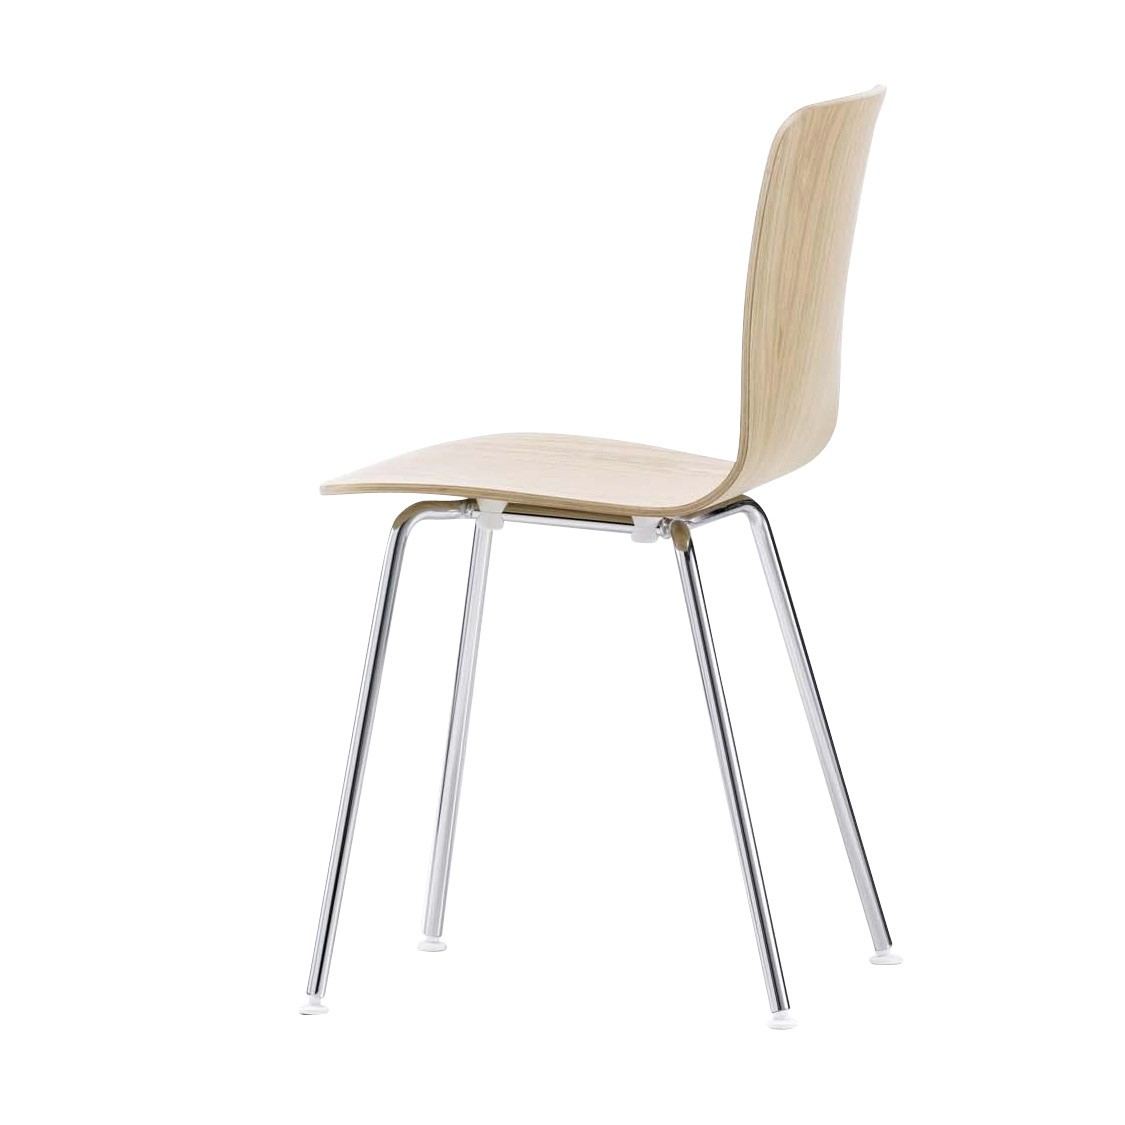 Vitra - Hal Ply Tube Chair ...  sc 1 st  AmbienteDirect & Vitra Hal Ply Tube Chair | AmbienteDirect